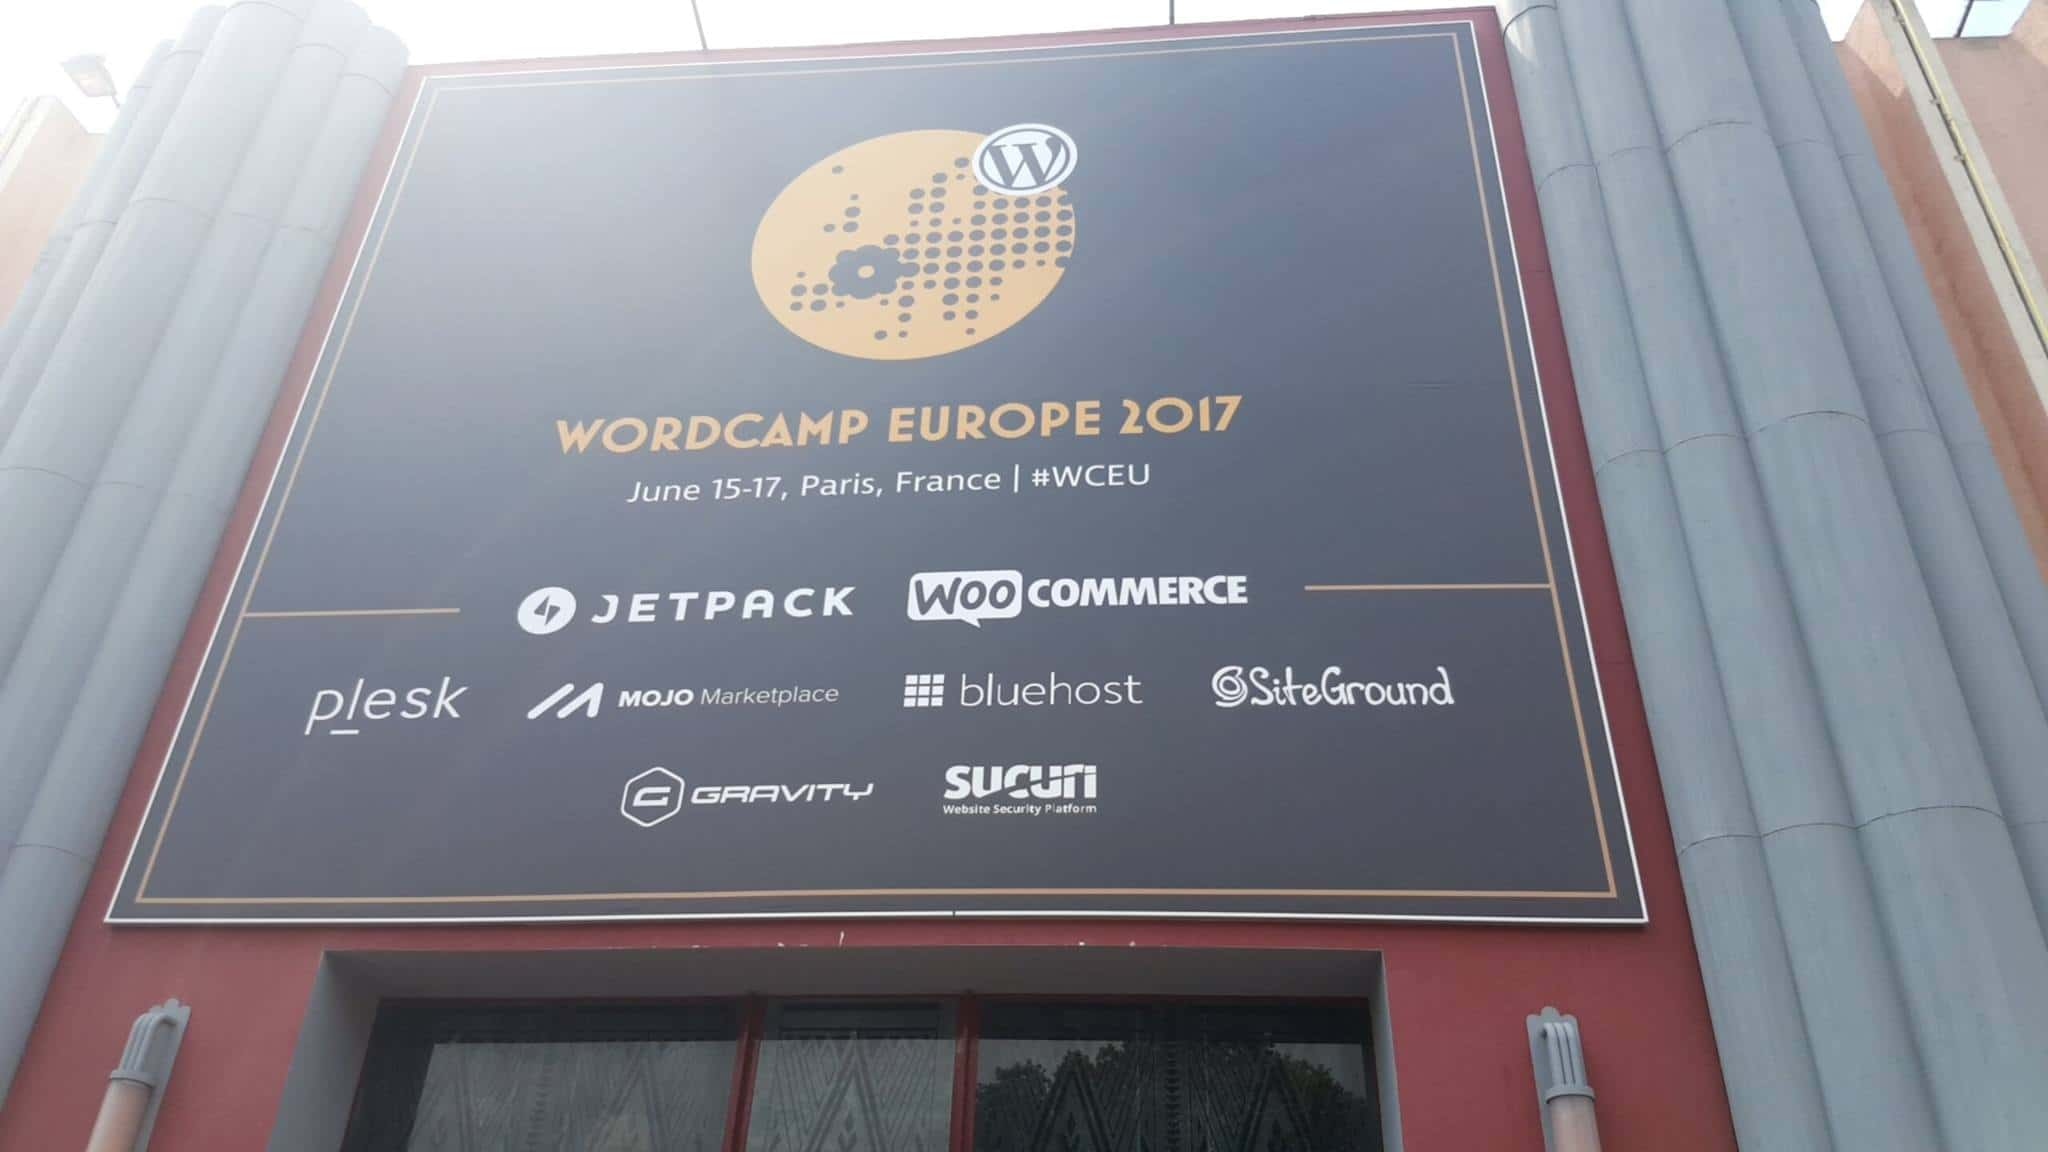 Votre agence digitale au wordcamp Europe